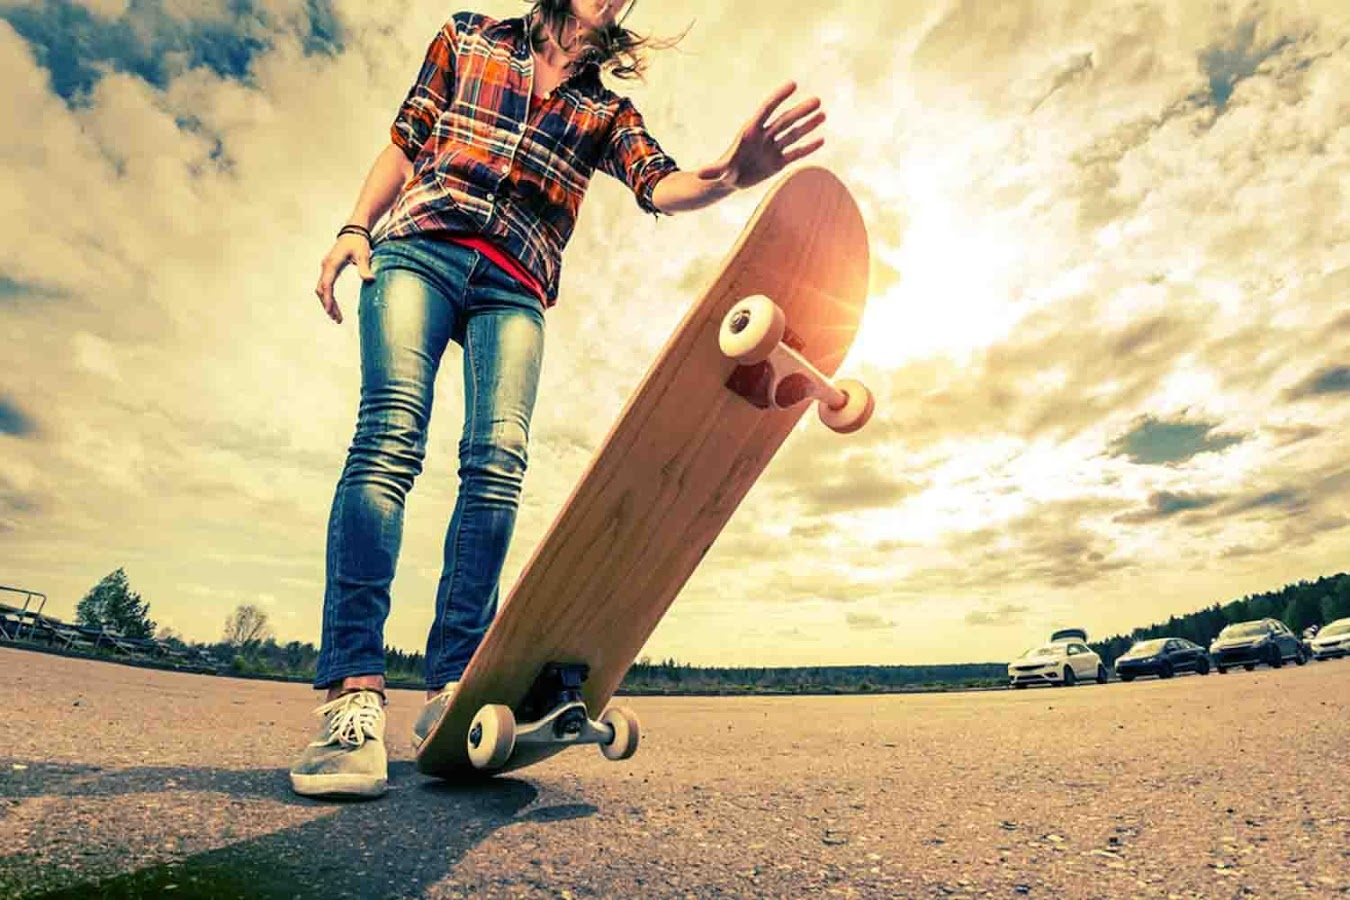 Skateboard Wallpaper - Android Apps on Google Play